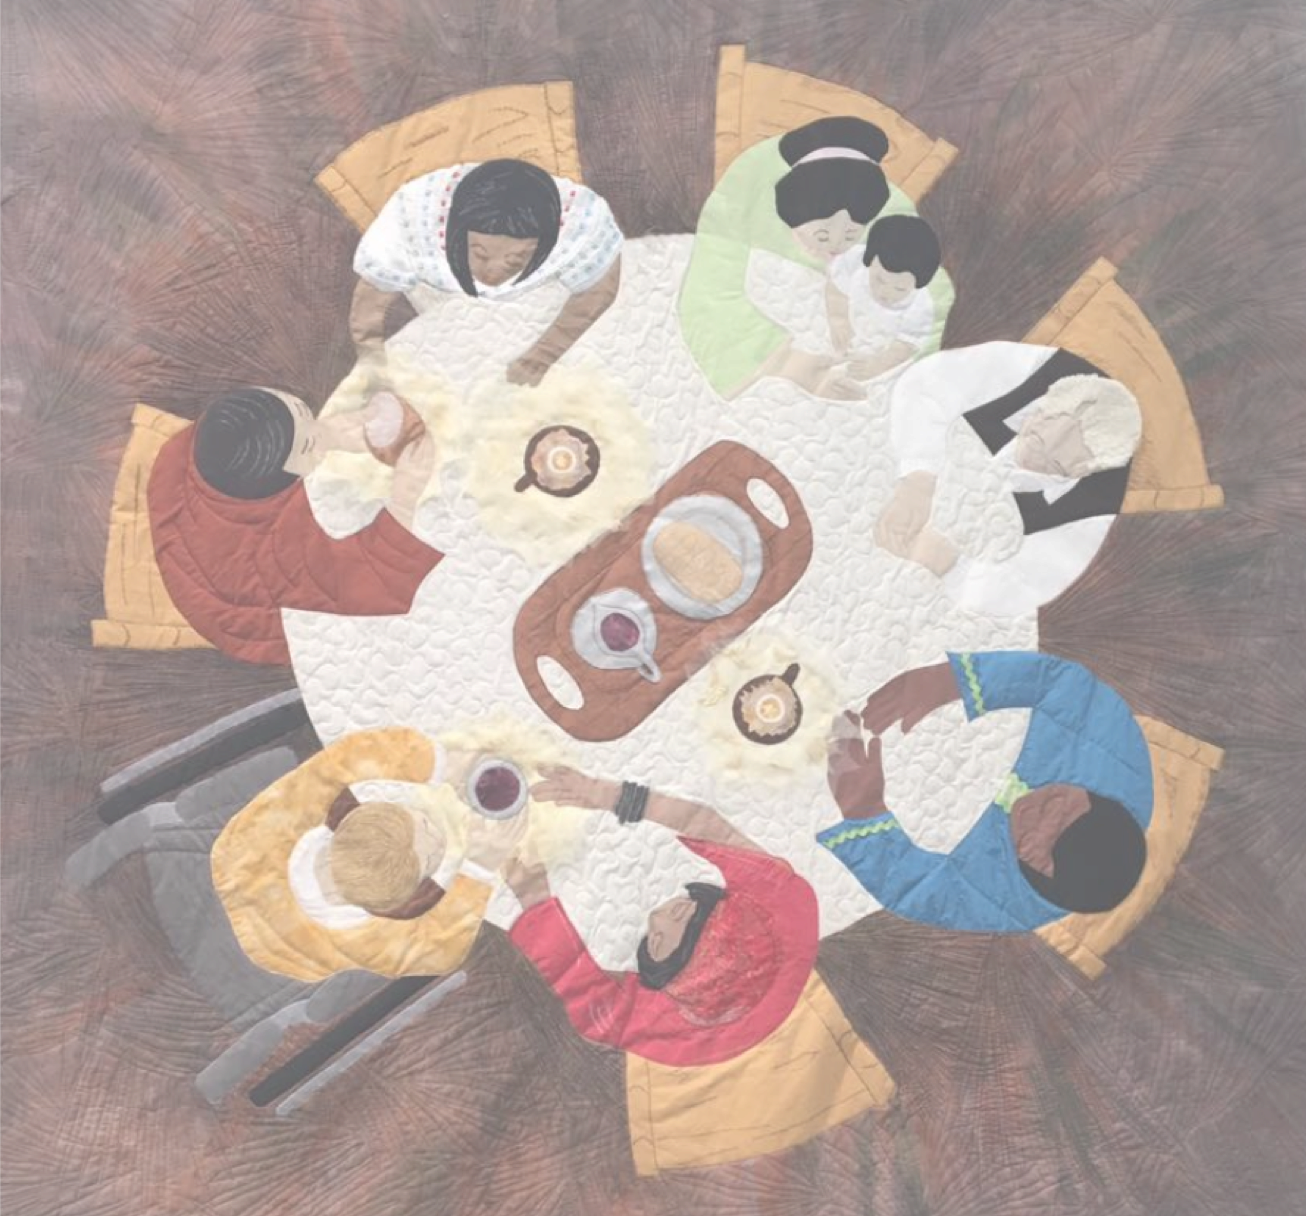 quilt looking down on 8 people, of various ages and races and disability status, sitting around a table sharing a common mean of bread and wine